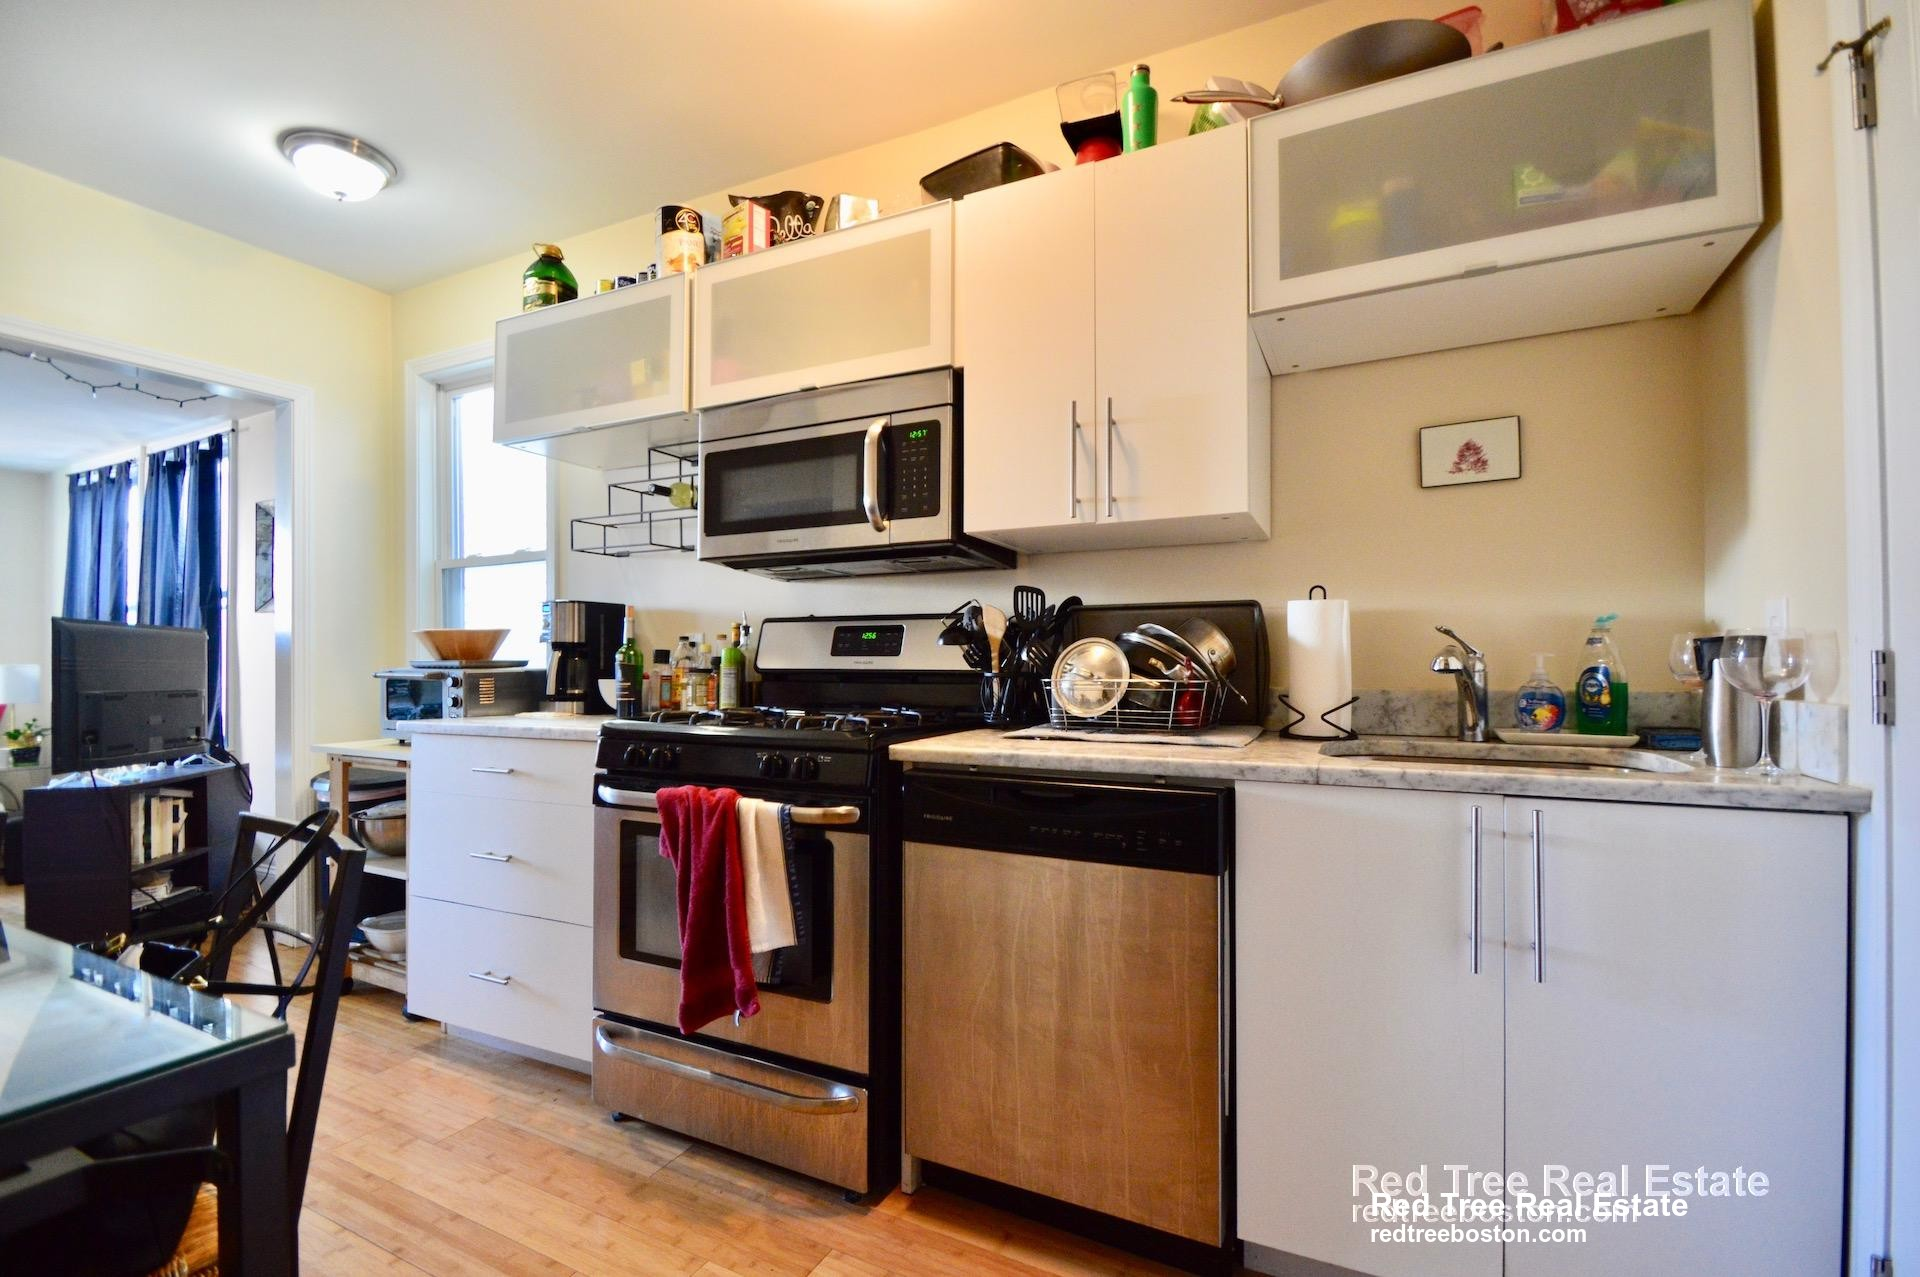 Pictures of  property for rent on Orleans St., Boston, MA 02128